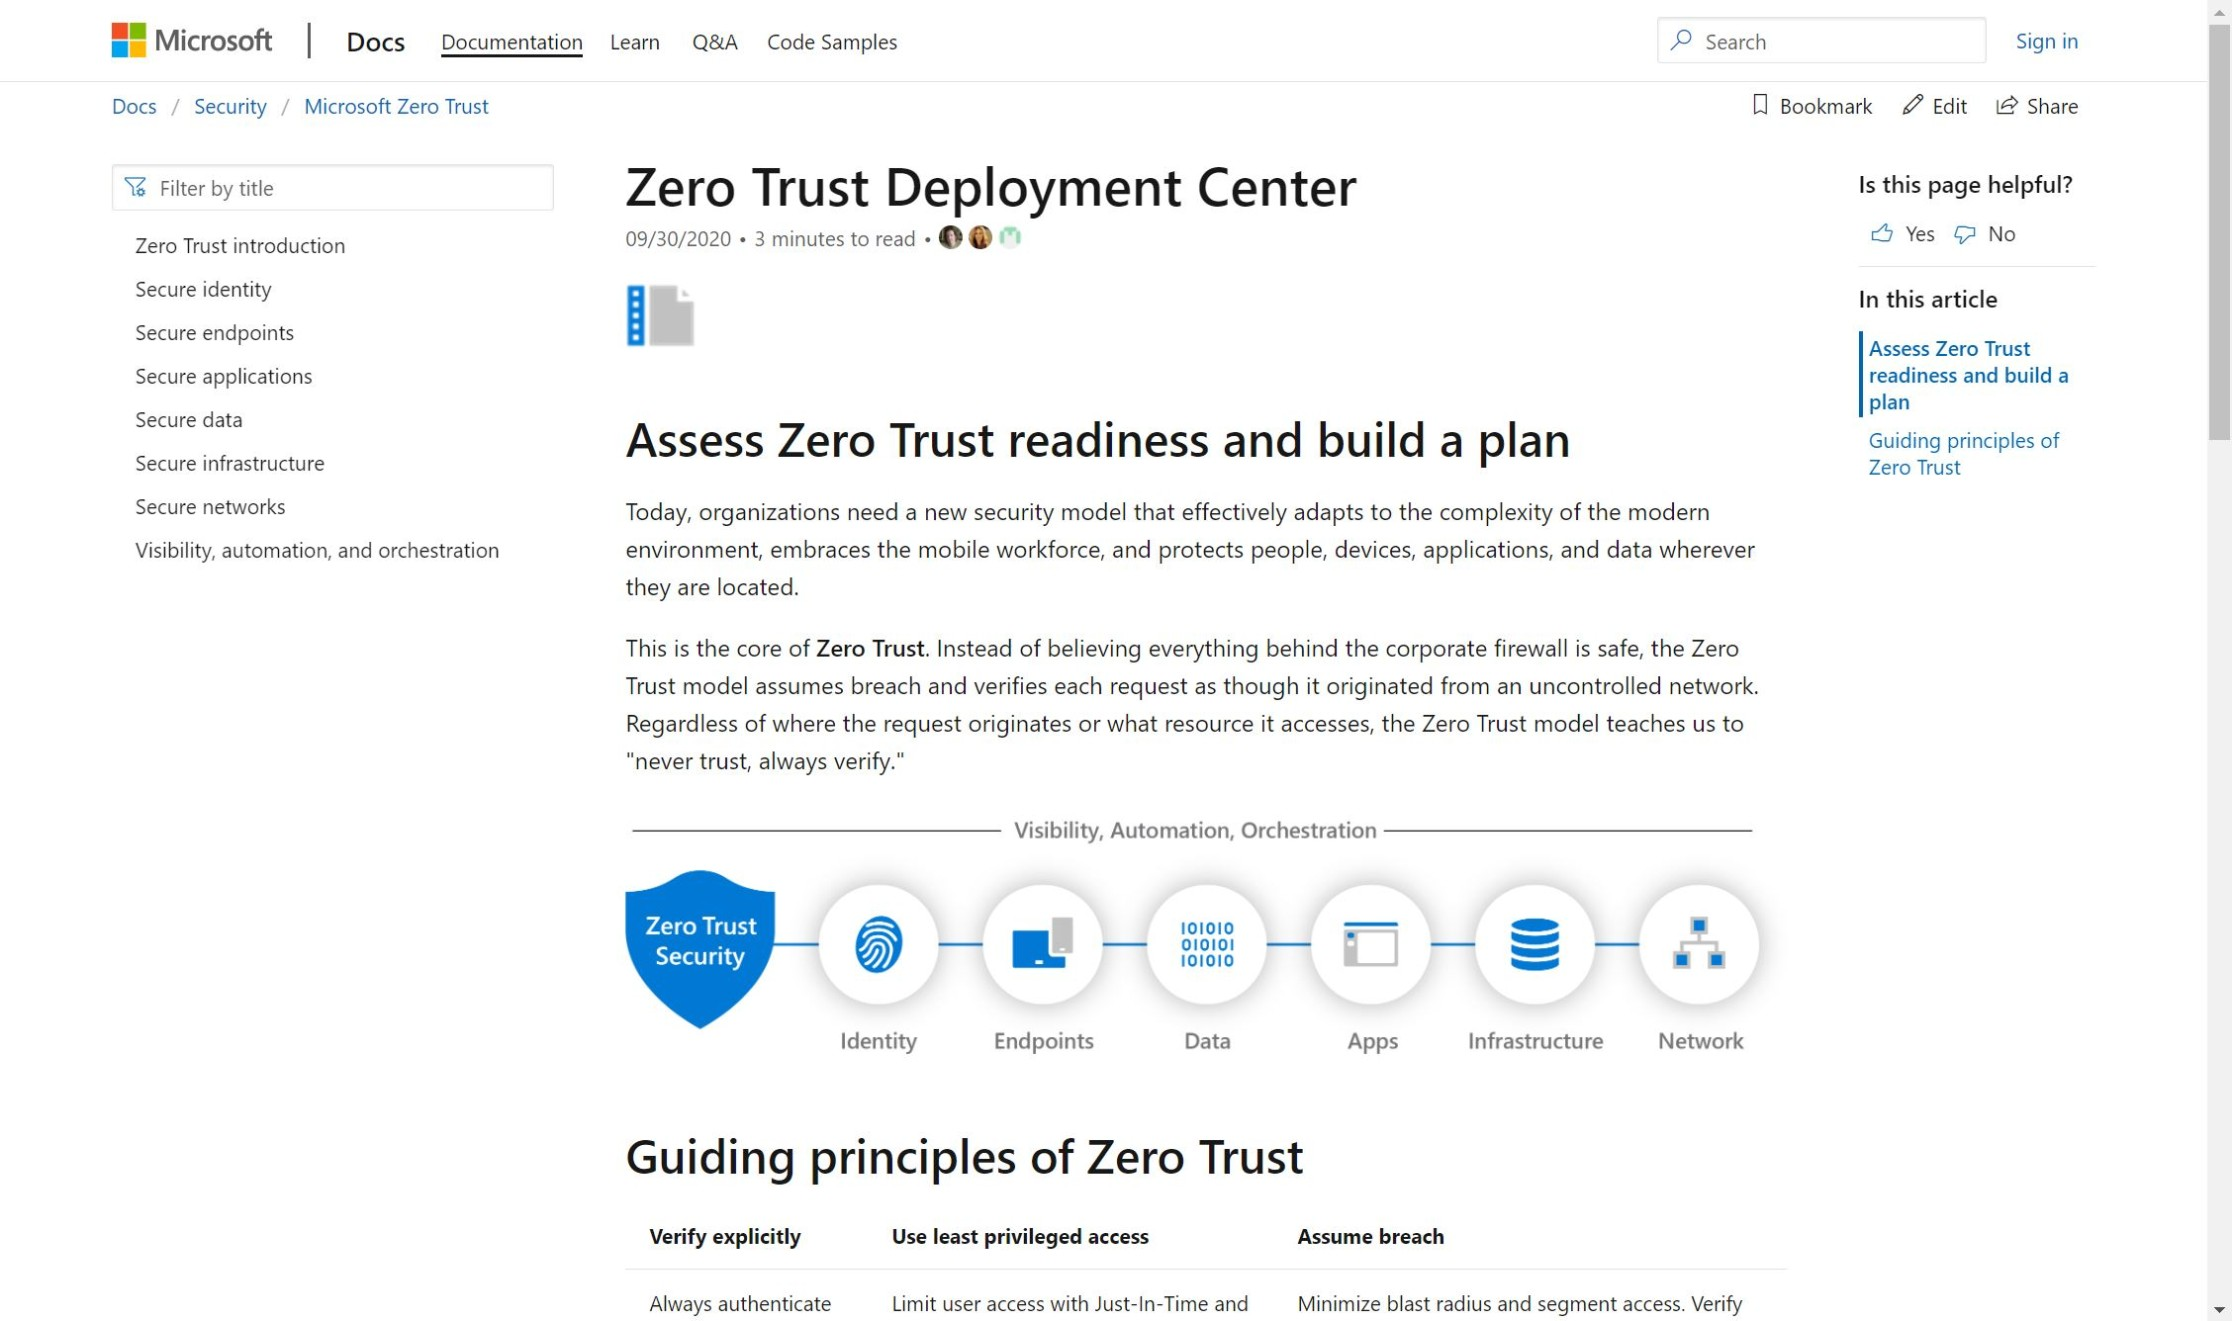 A screenshot of the Zero Trust Deployment Center web page